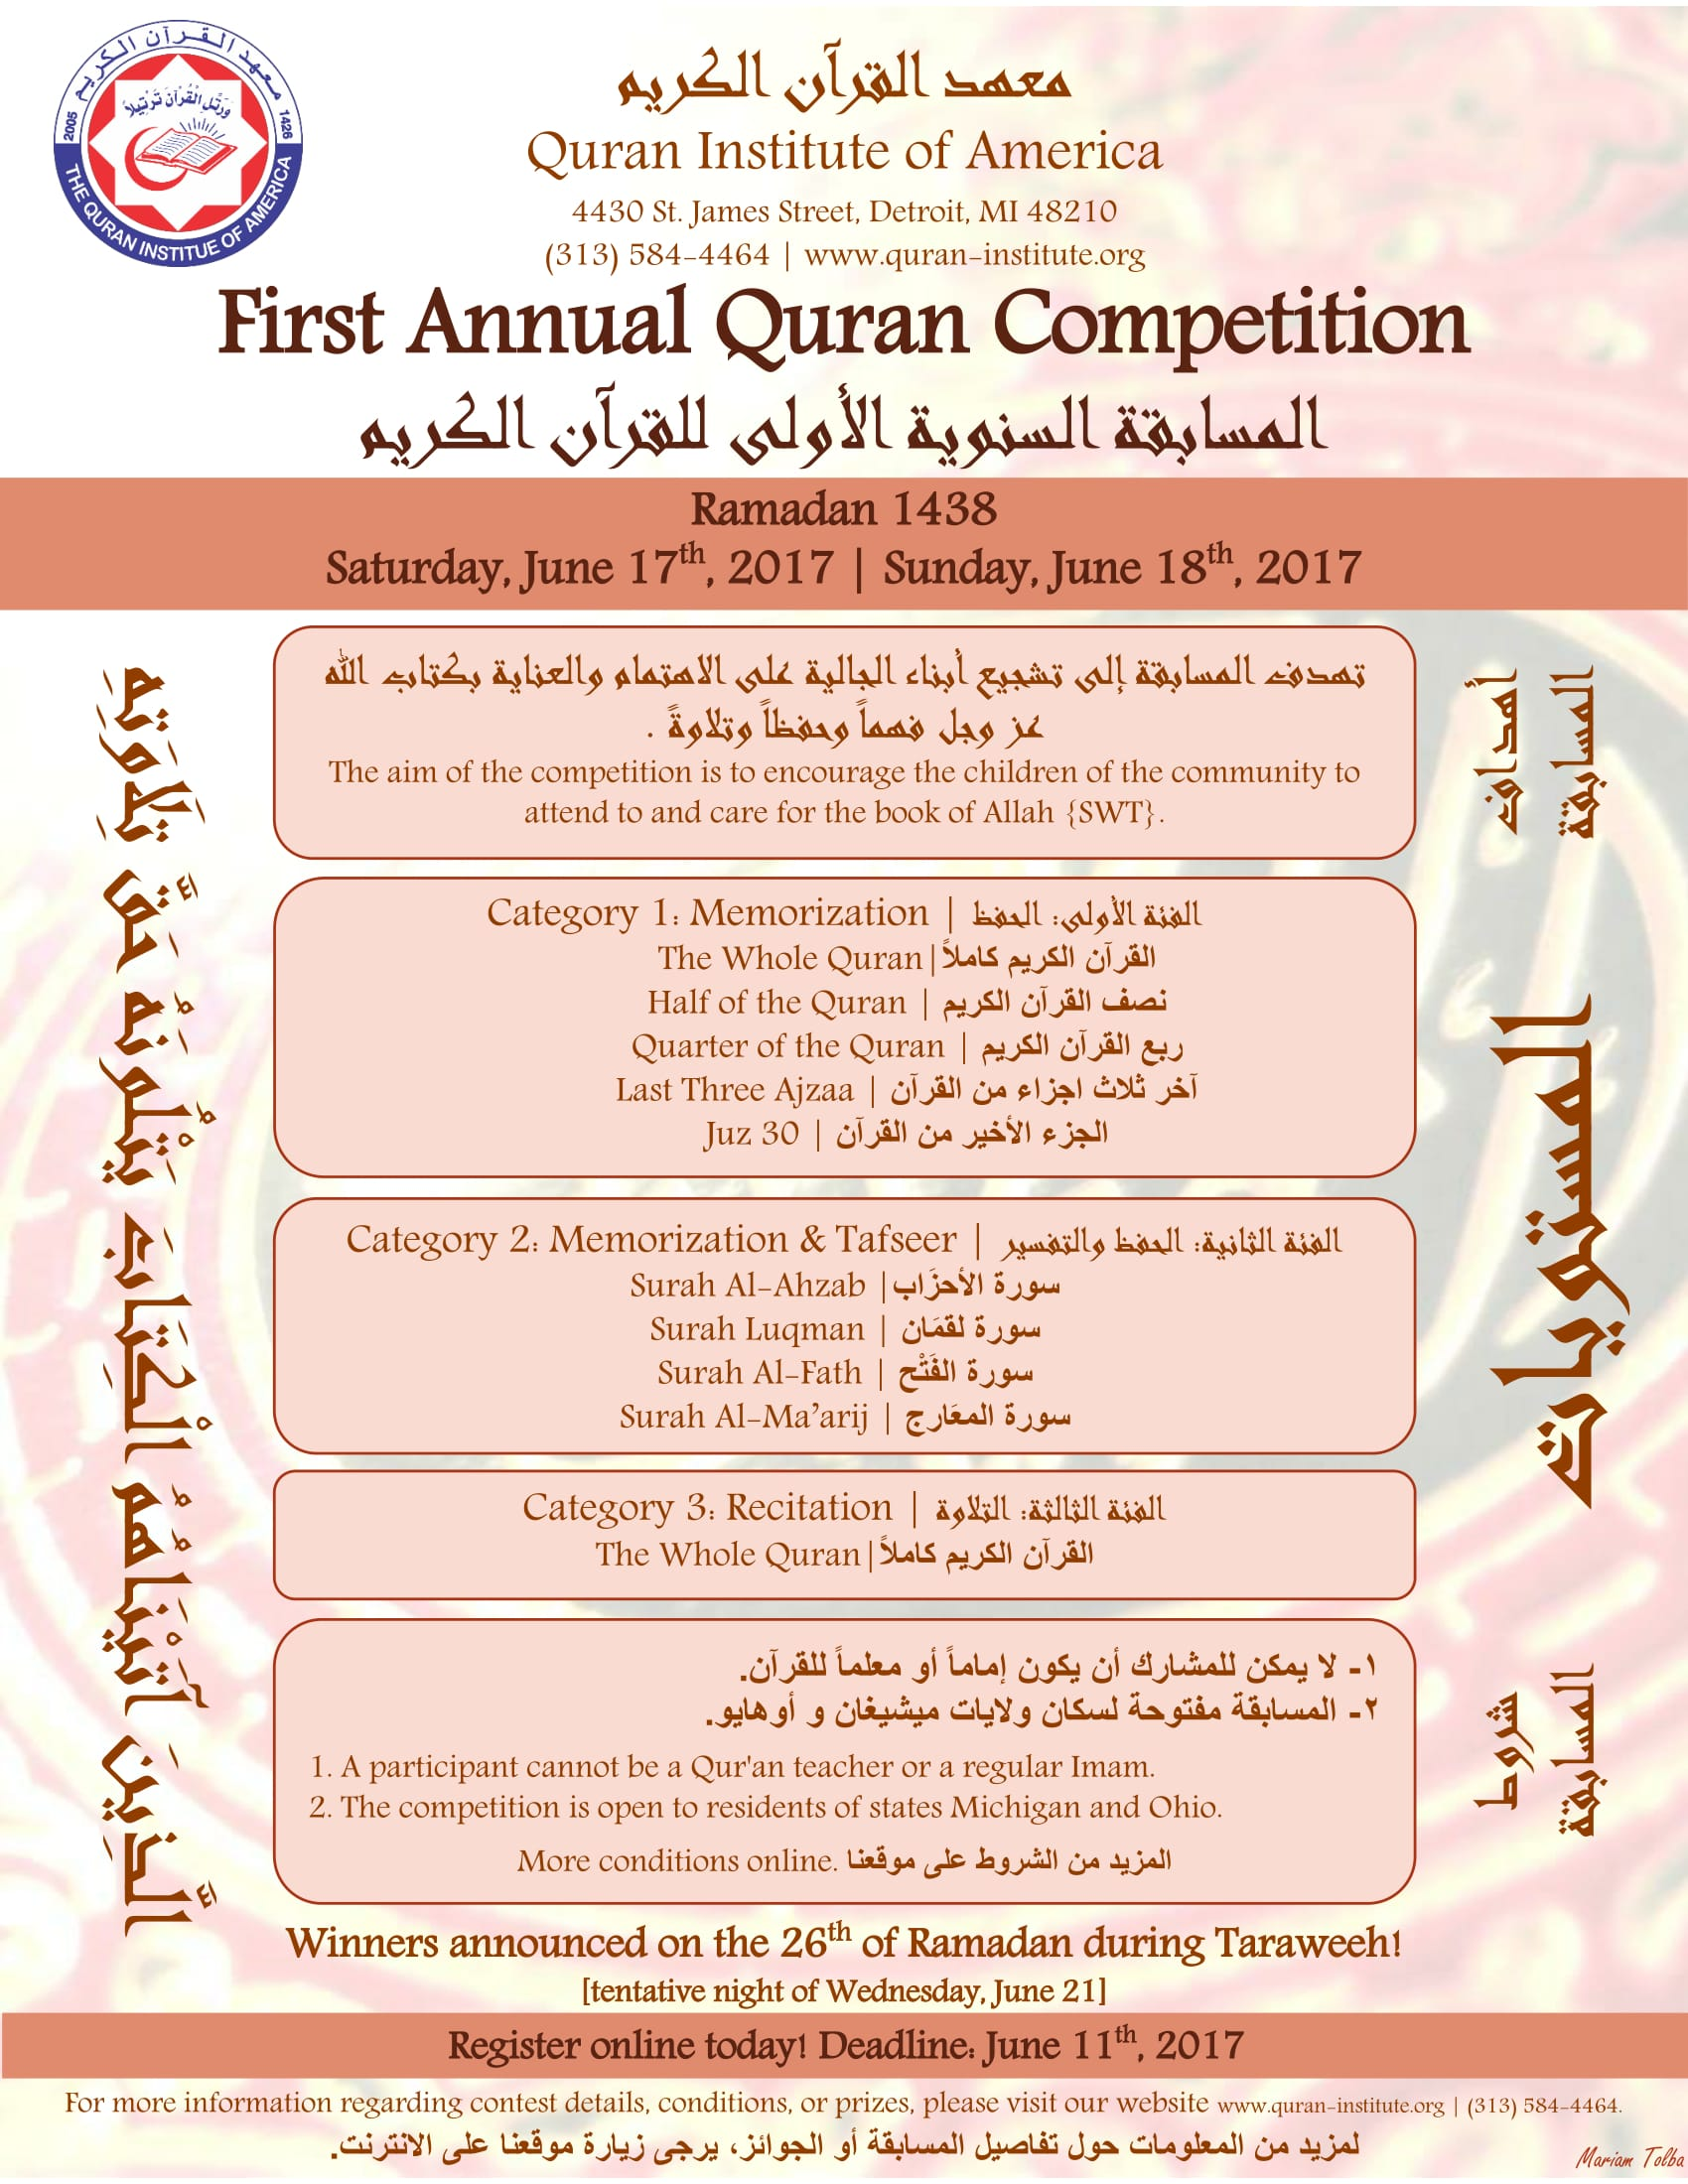 annnual quran competition flyer5-1